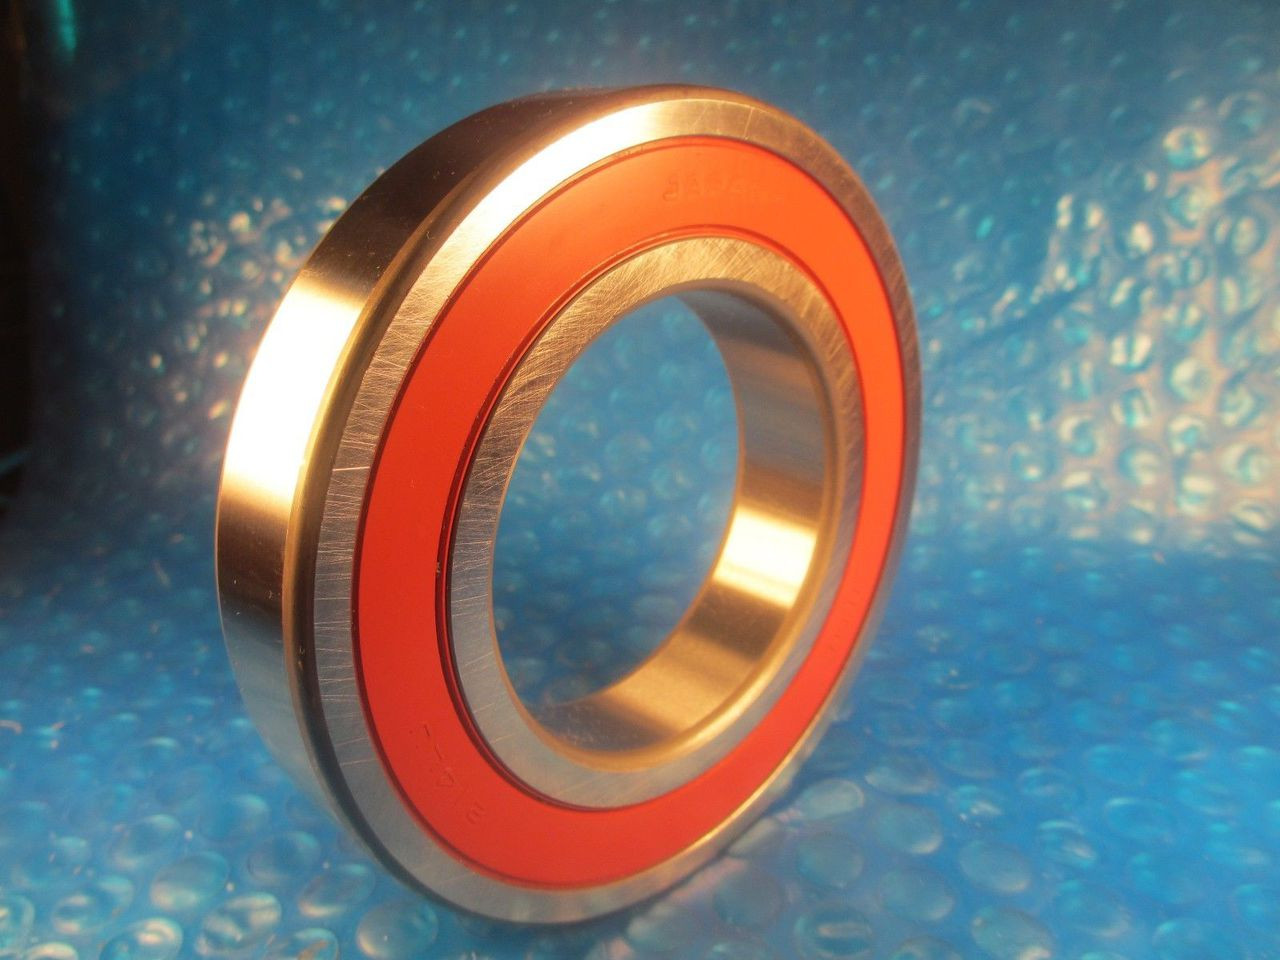 NTN 6000LU 6000 LU Single Row Radial Ball Bearing